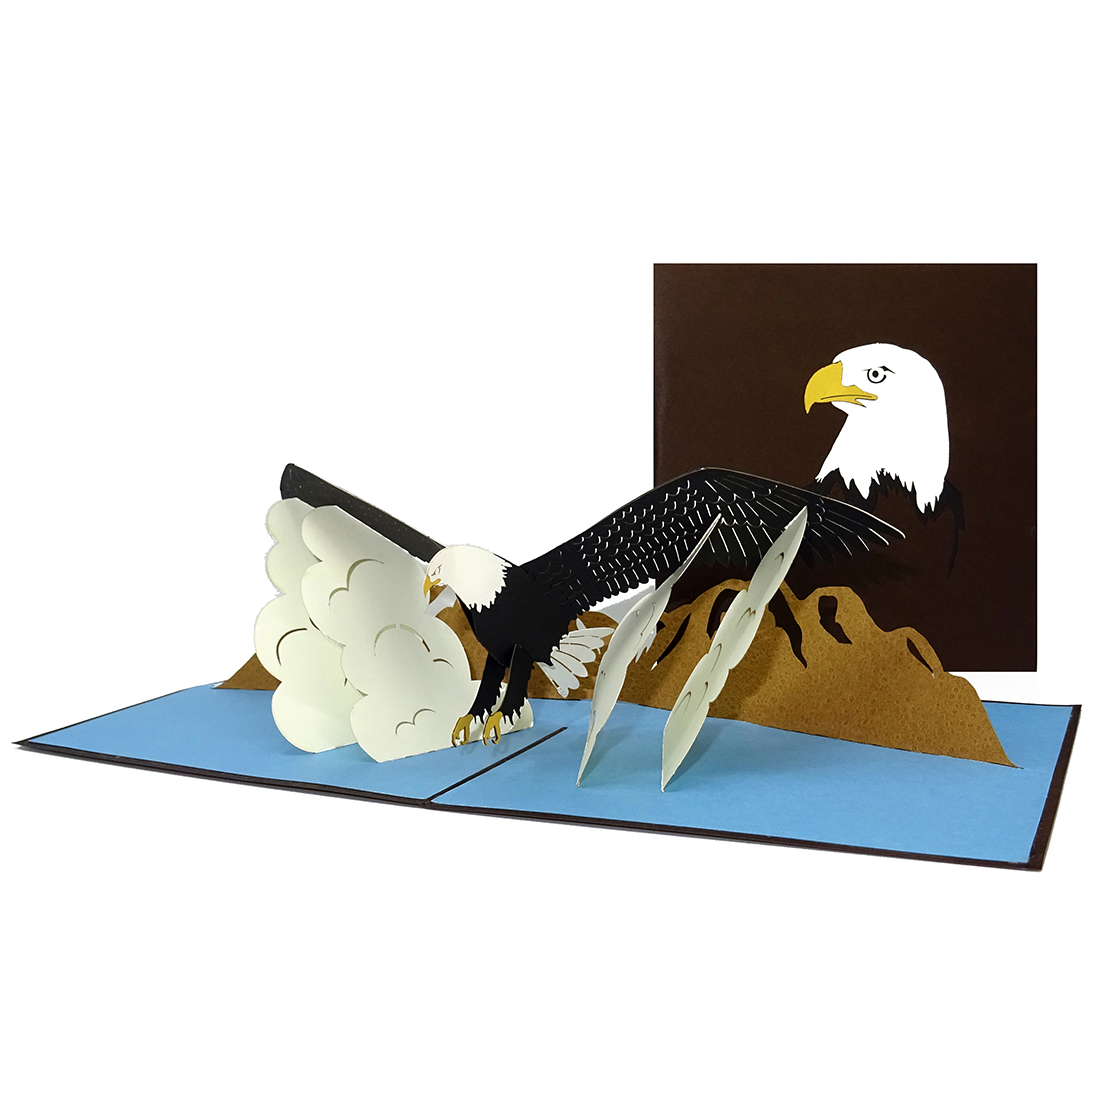 "Pop Up Karte ""Adler - Eagle's Wings"" - Grusskarte, 3D Geburtstagskarte"